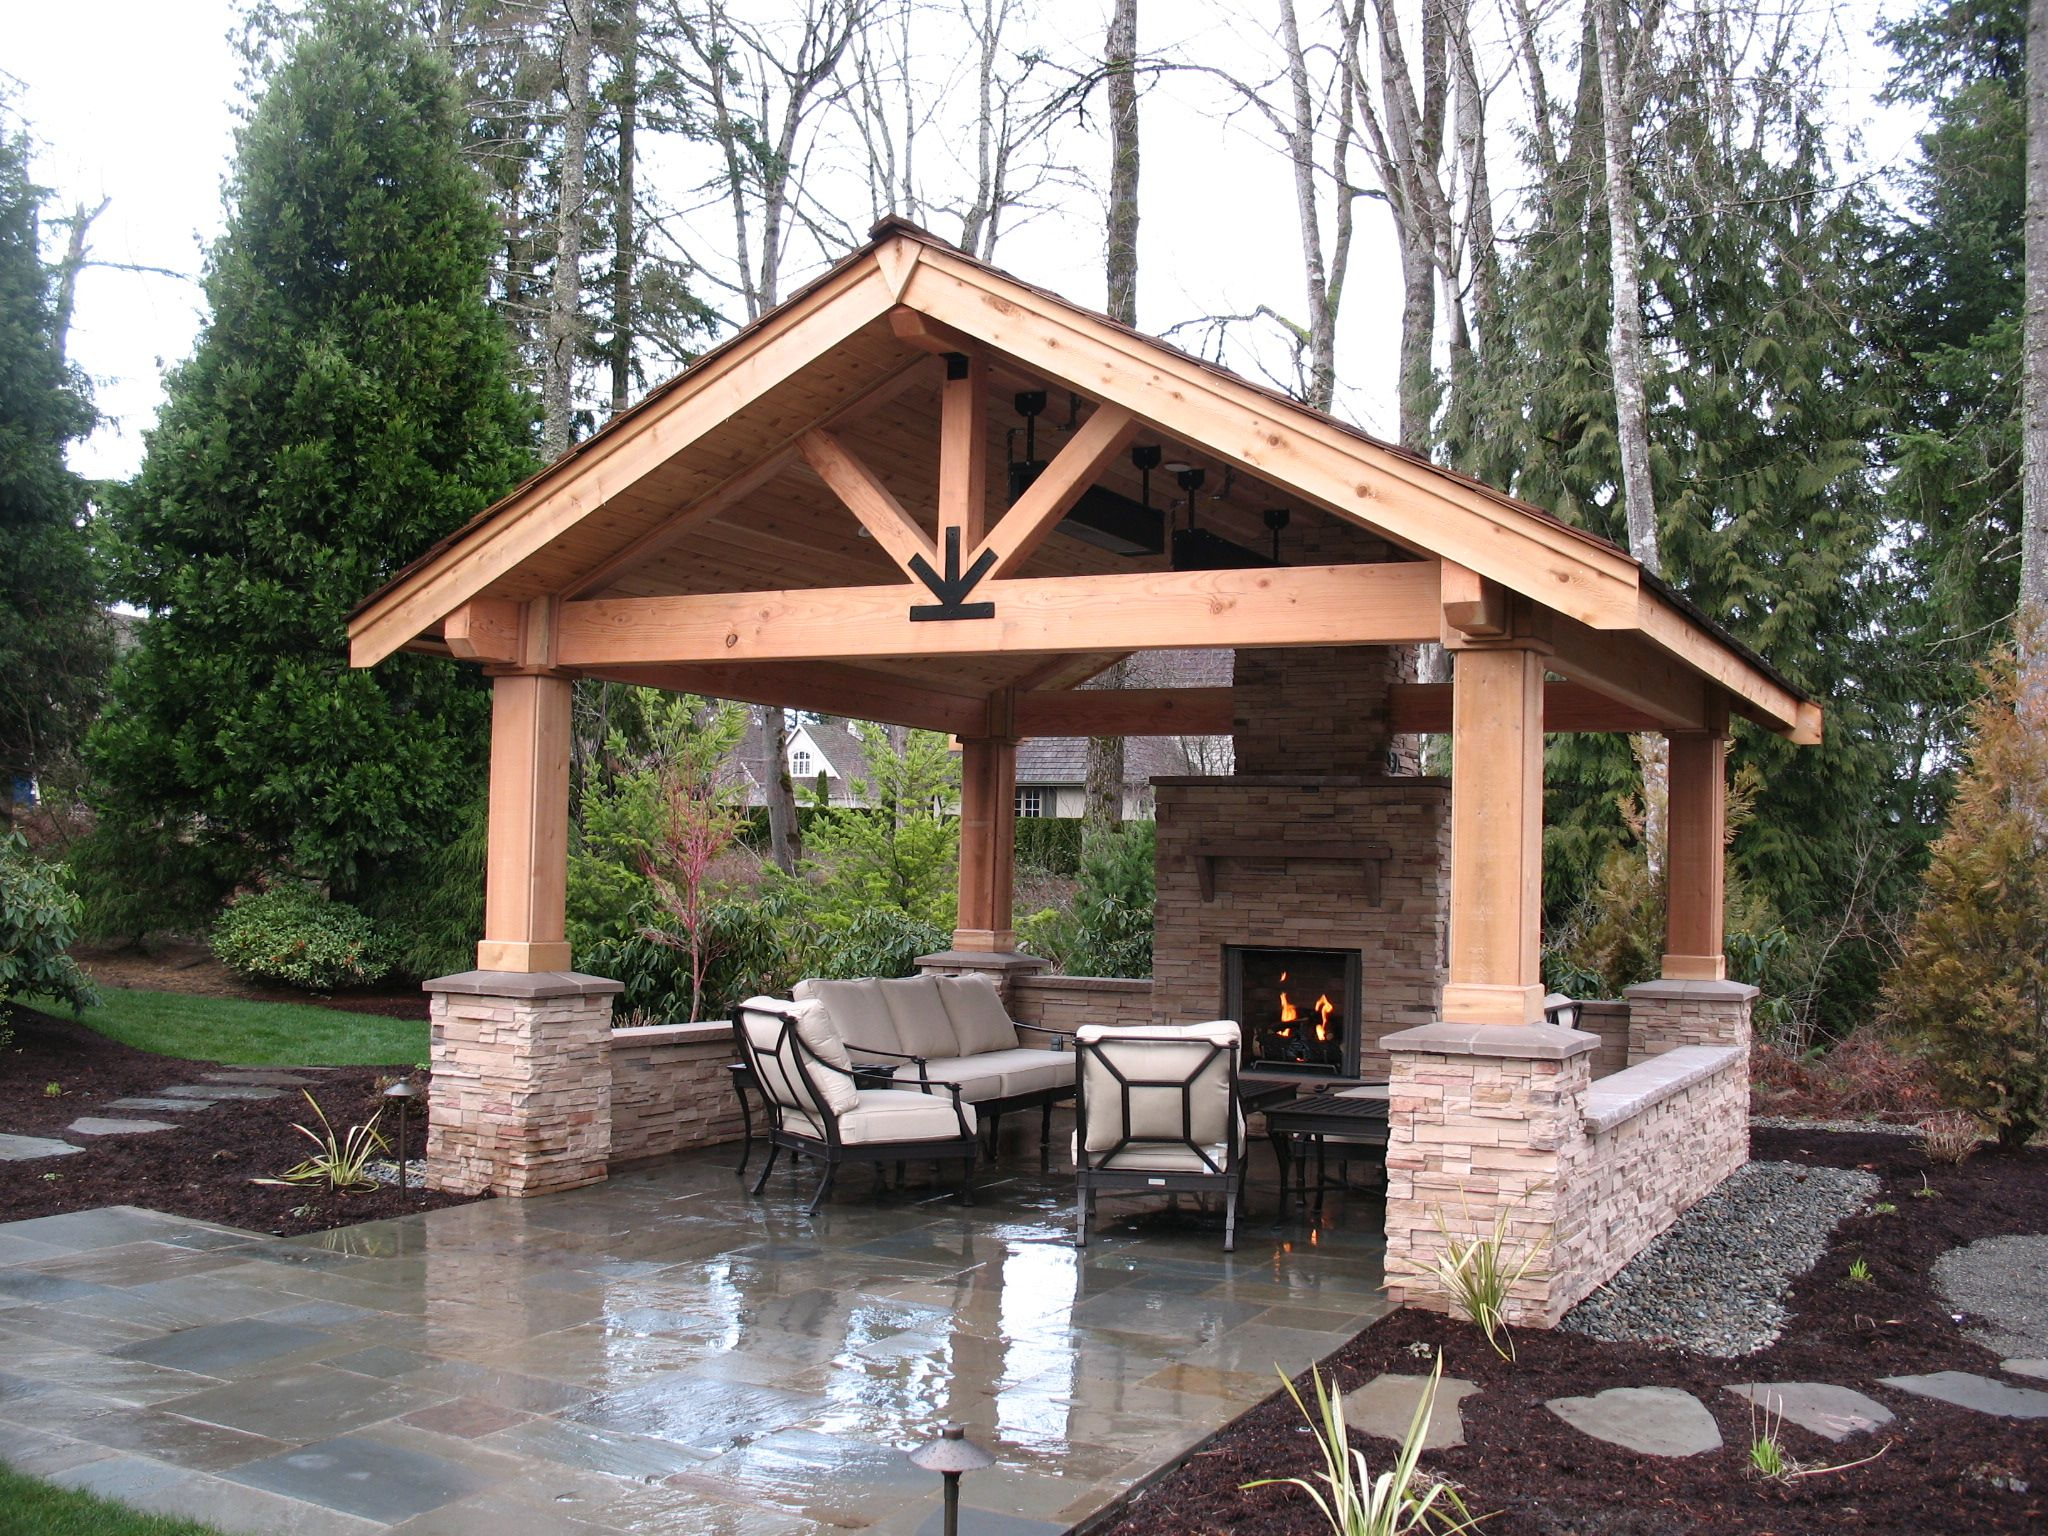 New 21 Outdoor Patios With Fireplace In 2020 Backyard Pavilion Outdoor Covered Patio Backyard Gazebo